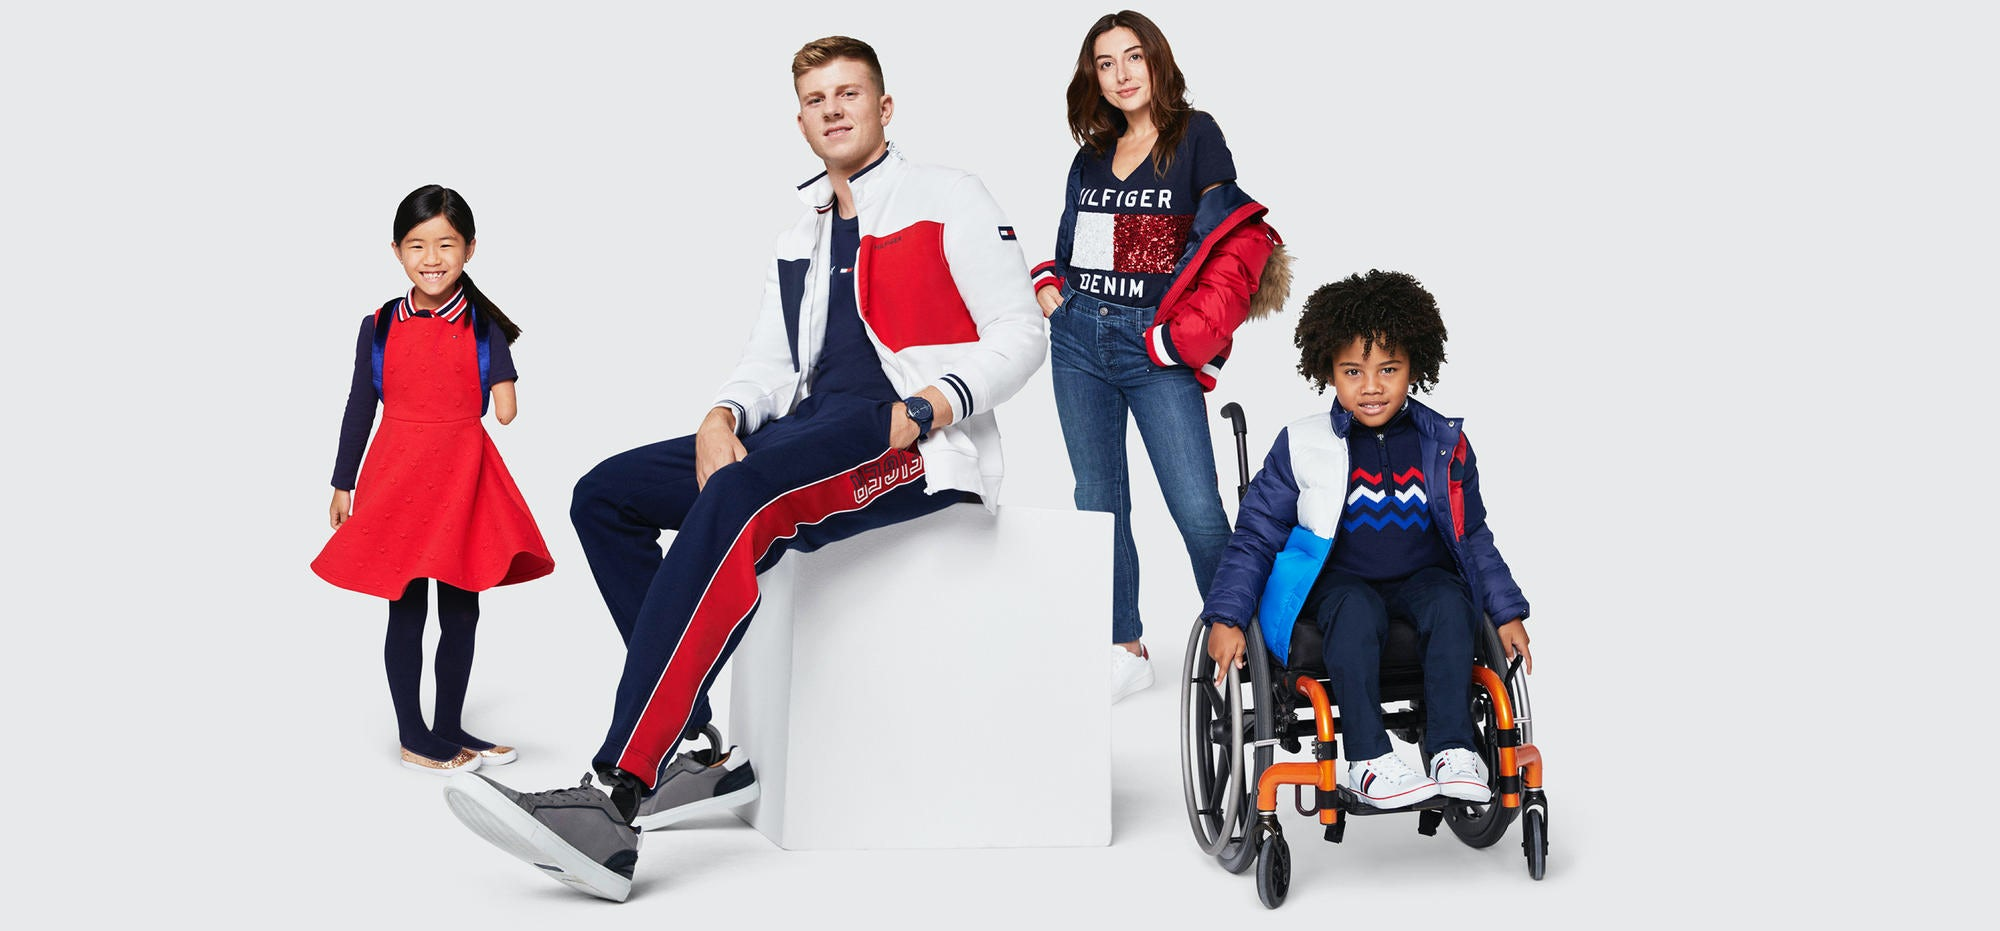 427fc0d3 Similarly, M&S's Easy Dressing kidswear range was conceived, designed and  developed with its customers over a two-year period, starting with a survey  of 300 ...